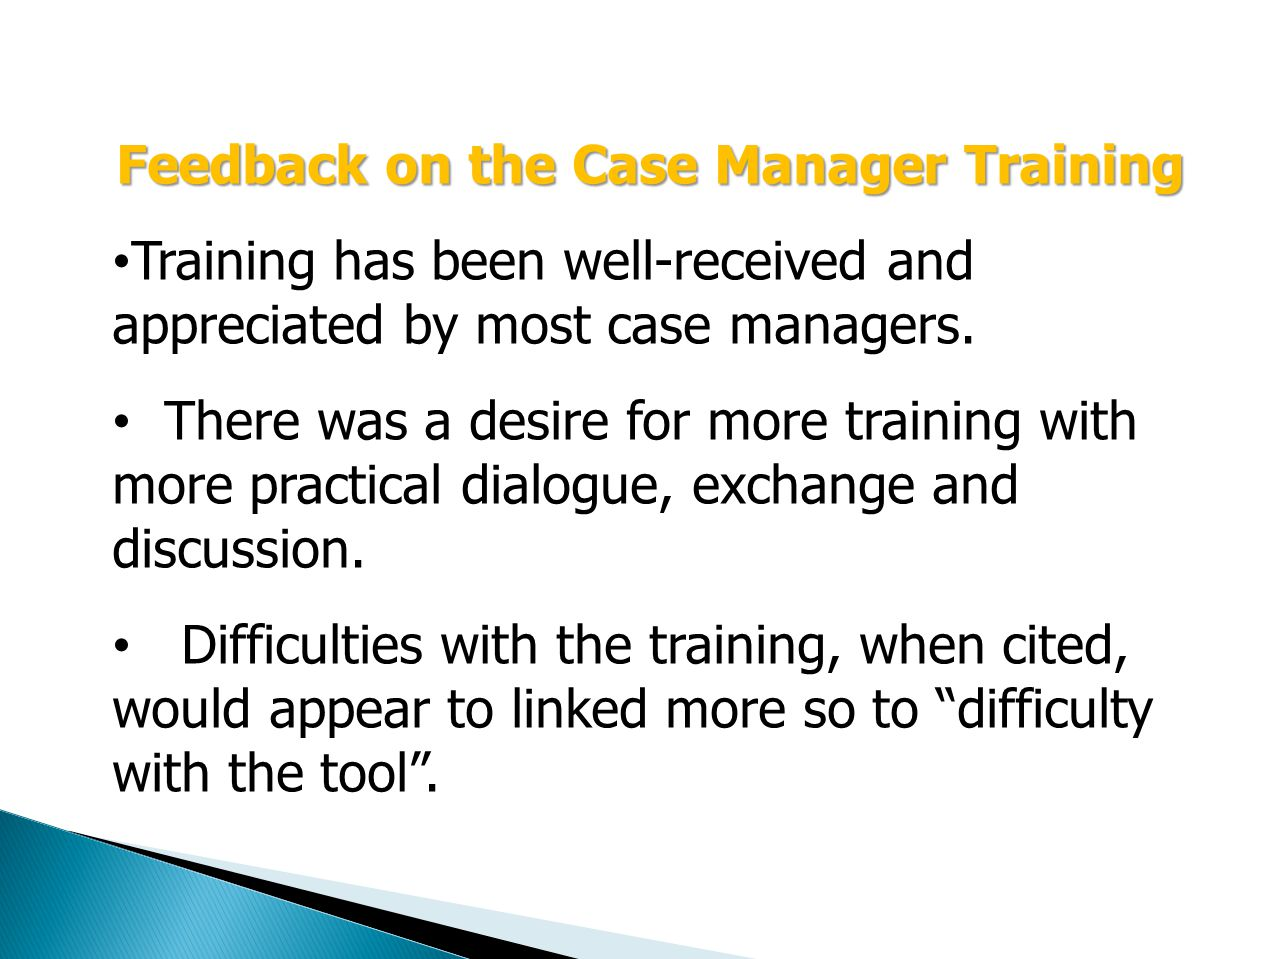 Feedback on the Case Manager Training Training has been well-received and appreciated by most case managers.